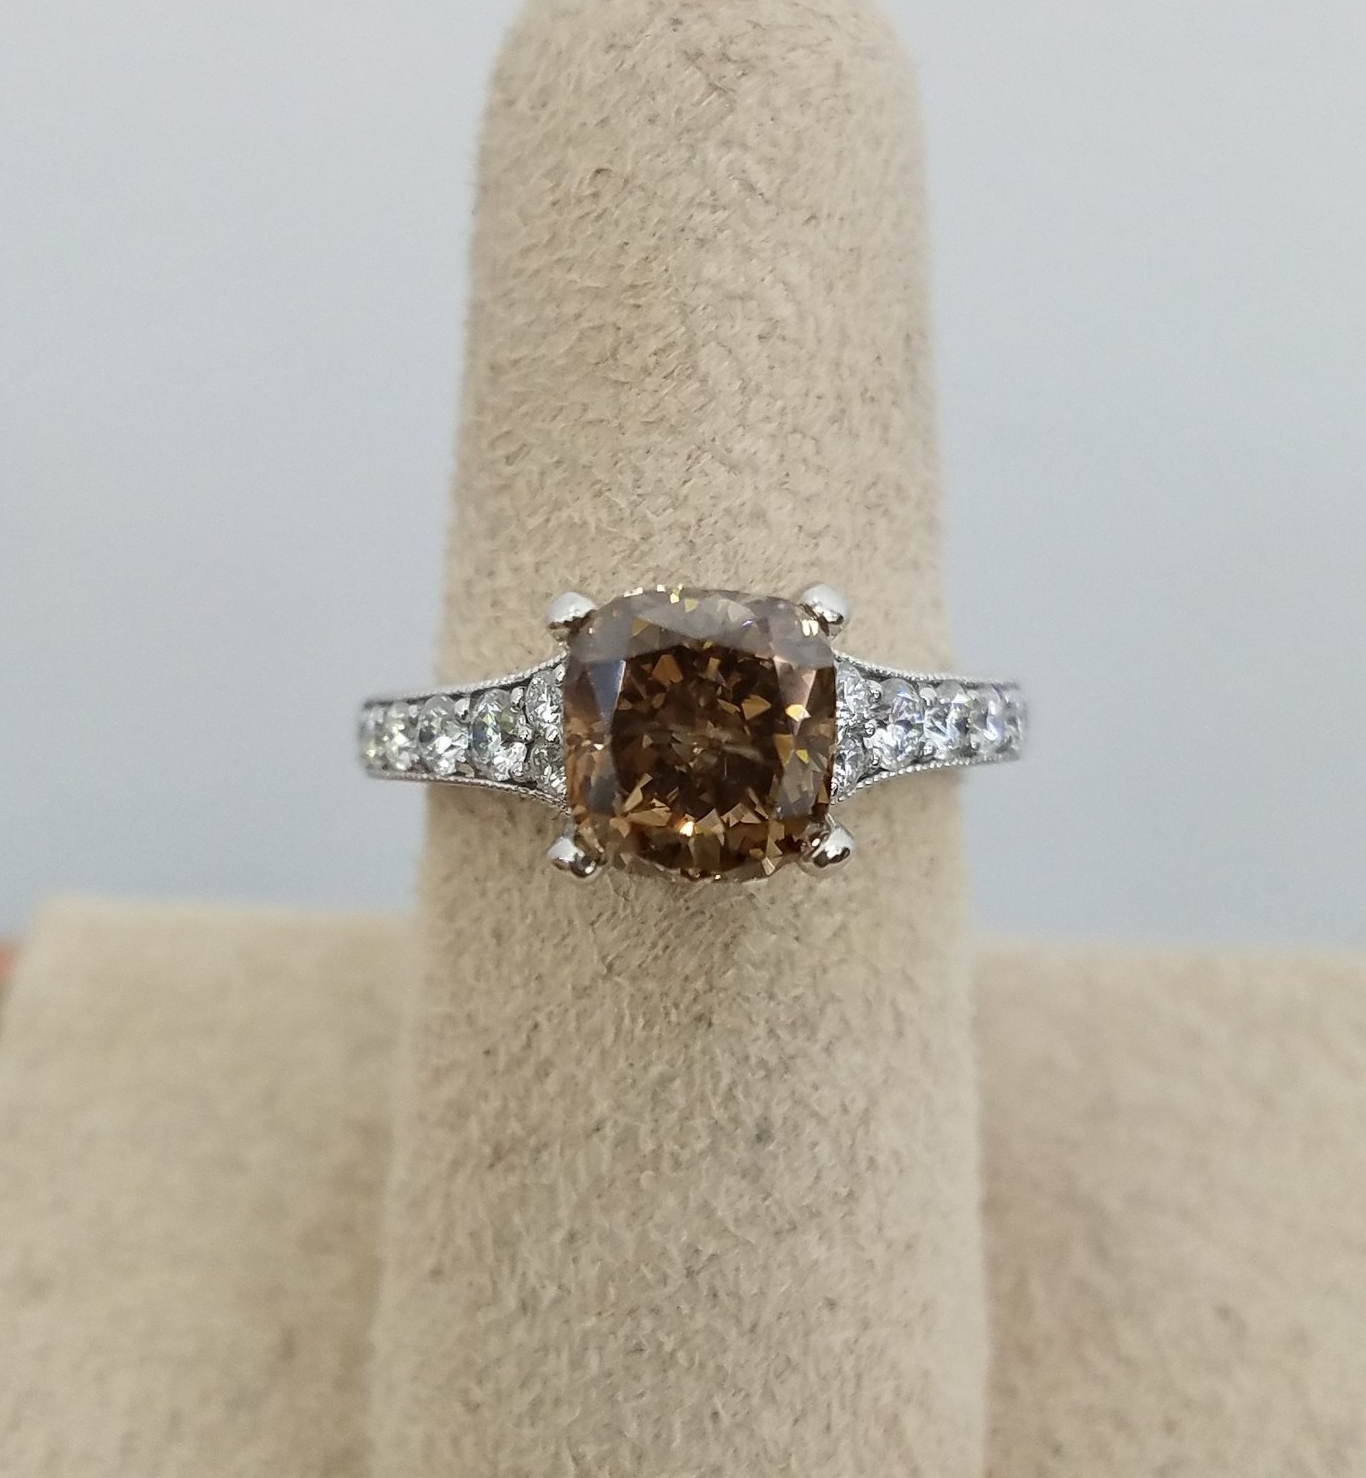 Custom Fancy brown diamond engagement ring in 18k white gold with milgrain details   by imperial jewelry company, chicago, il     http://www.imperialjewelryco.com